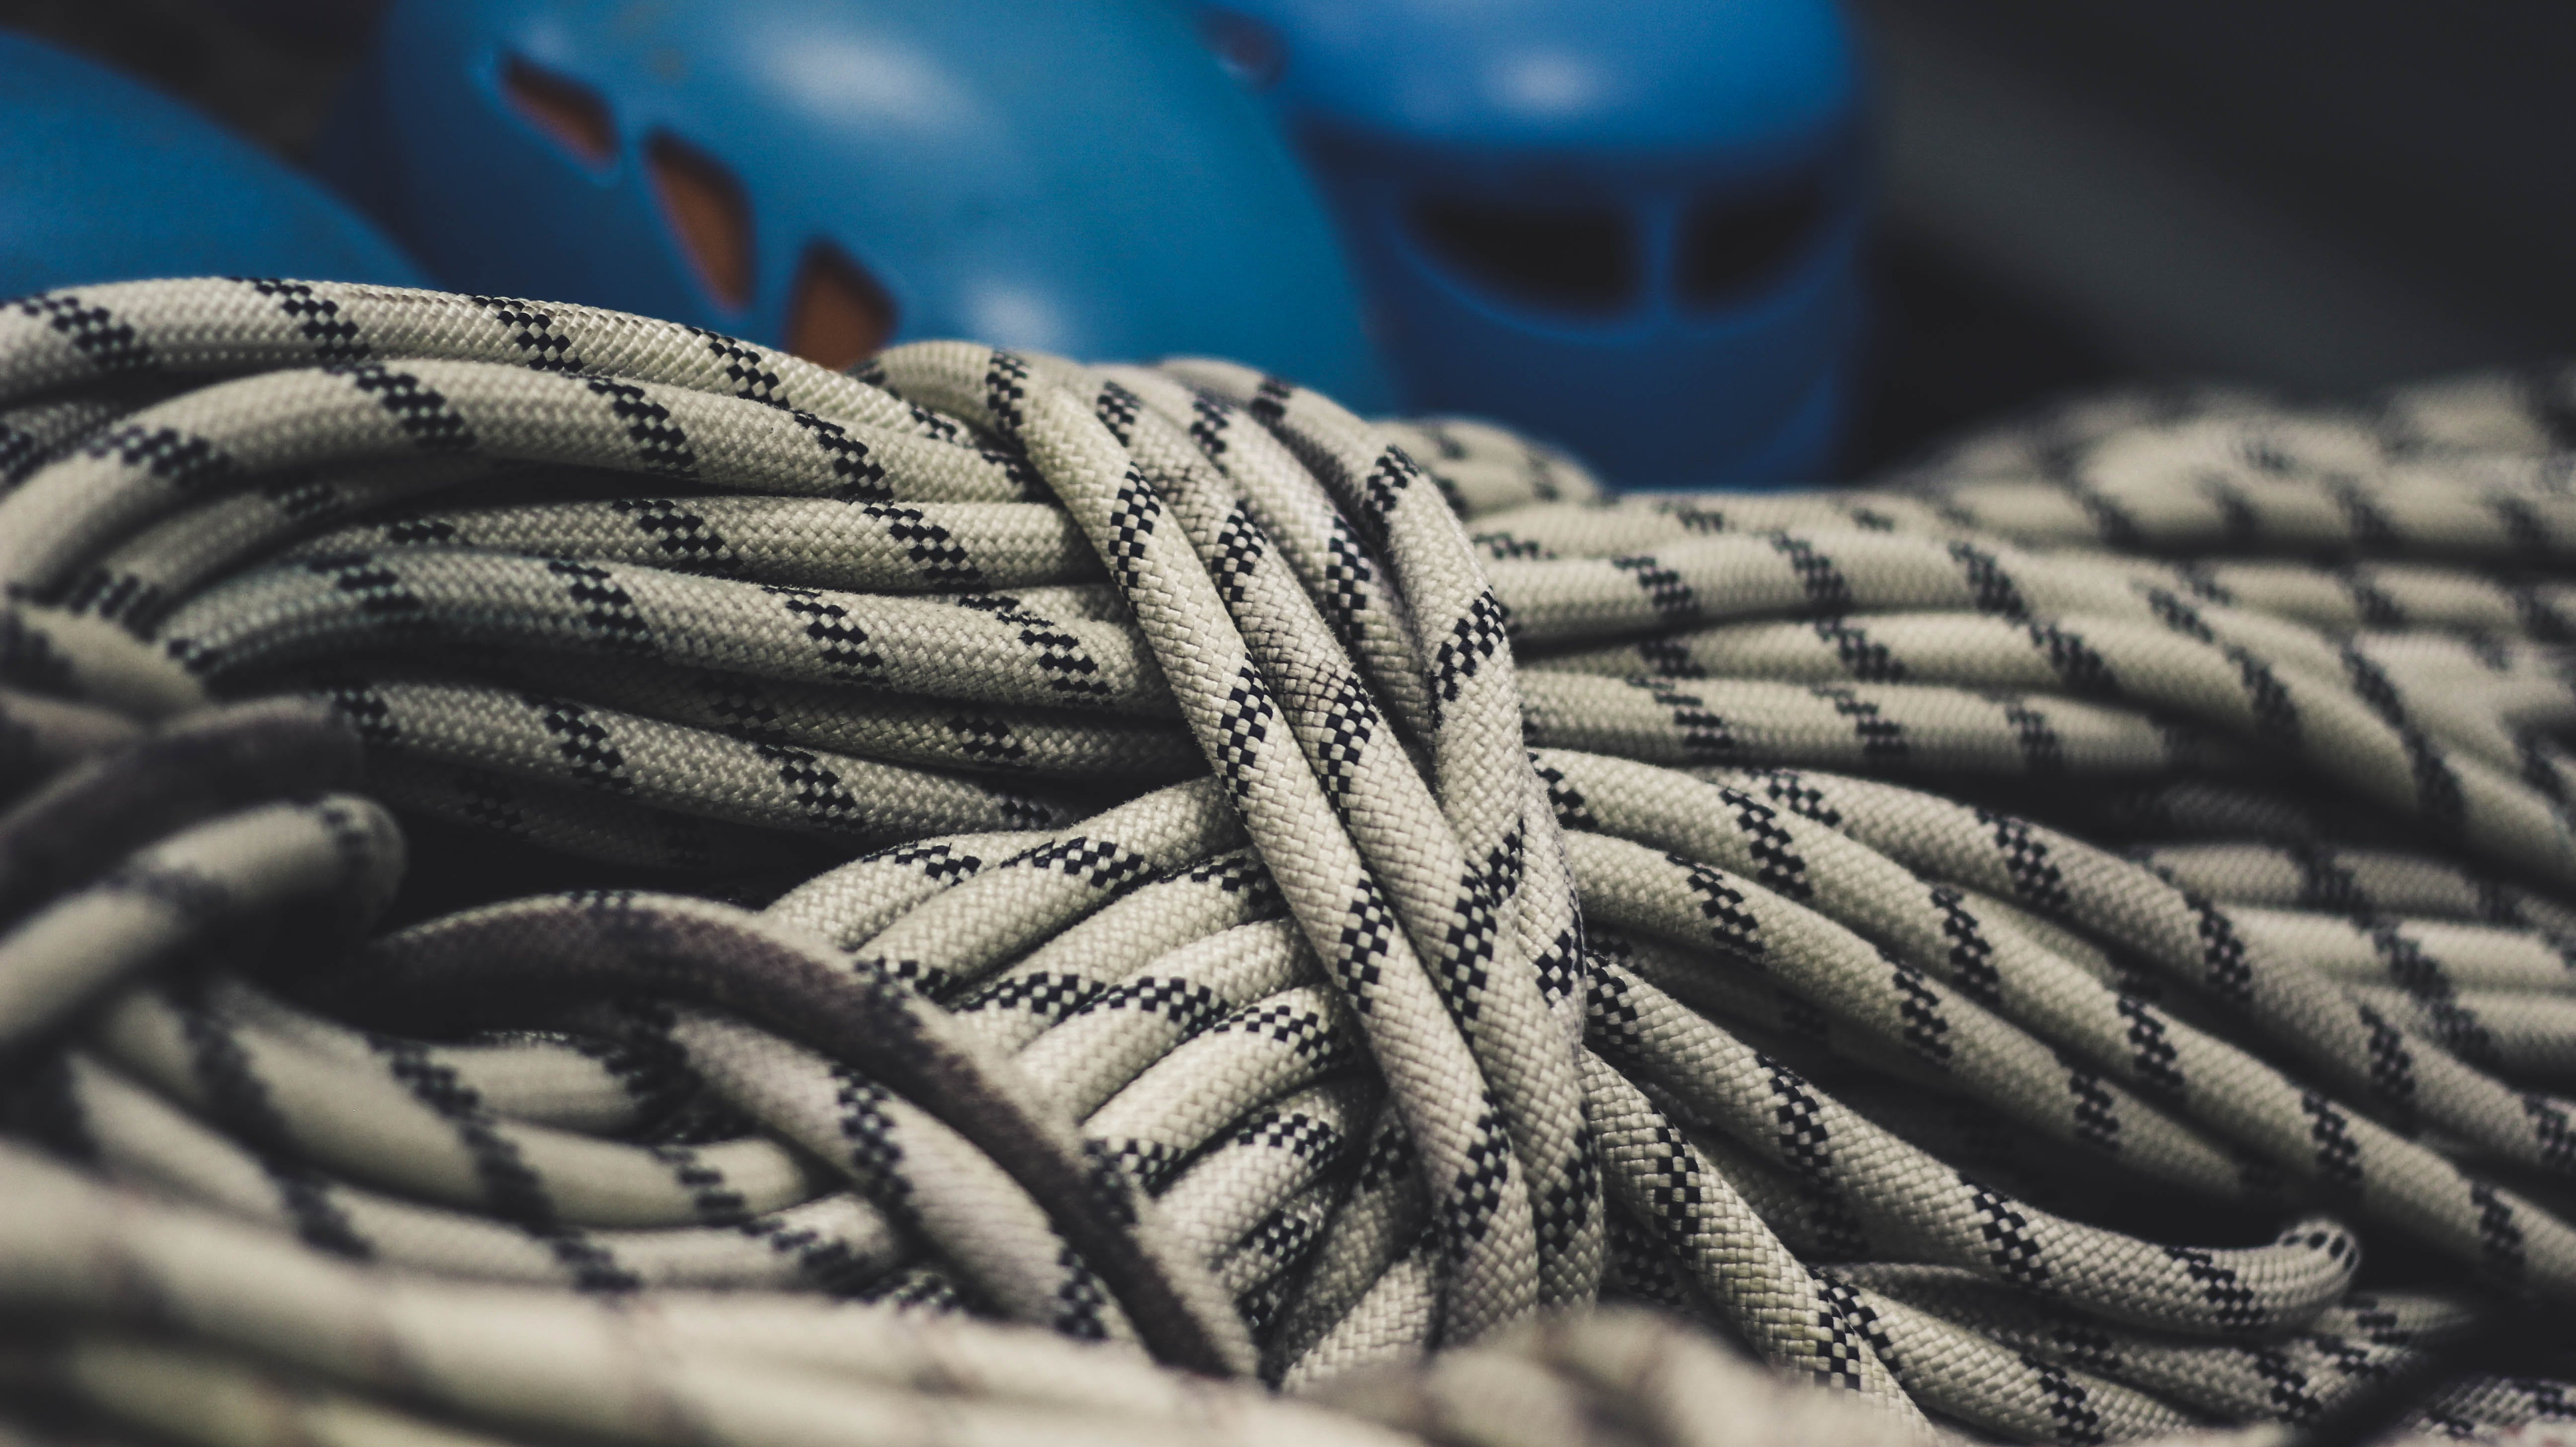 Free stock photo of Kermantel Rope